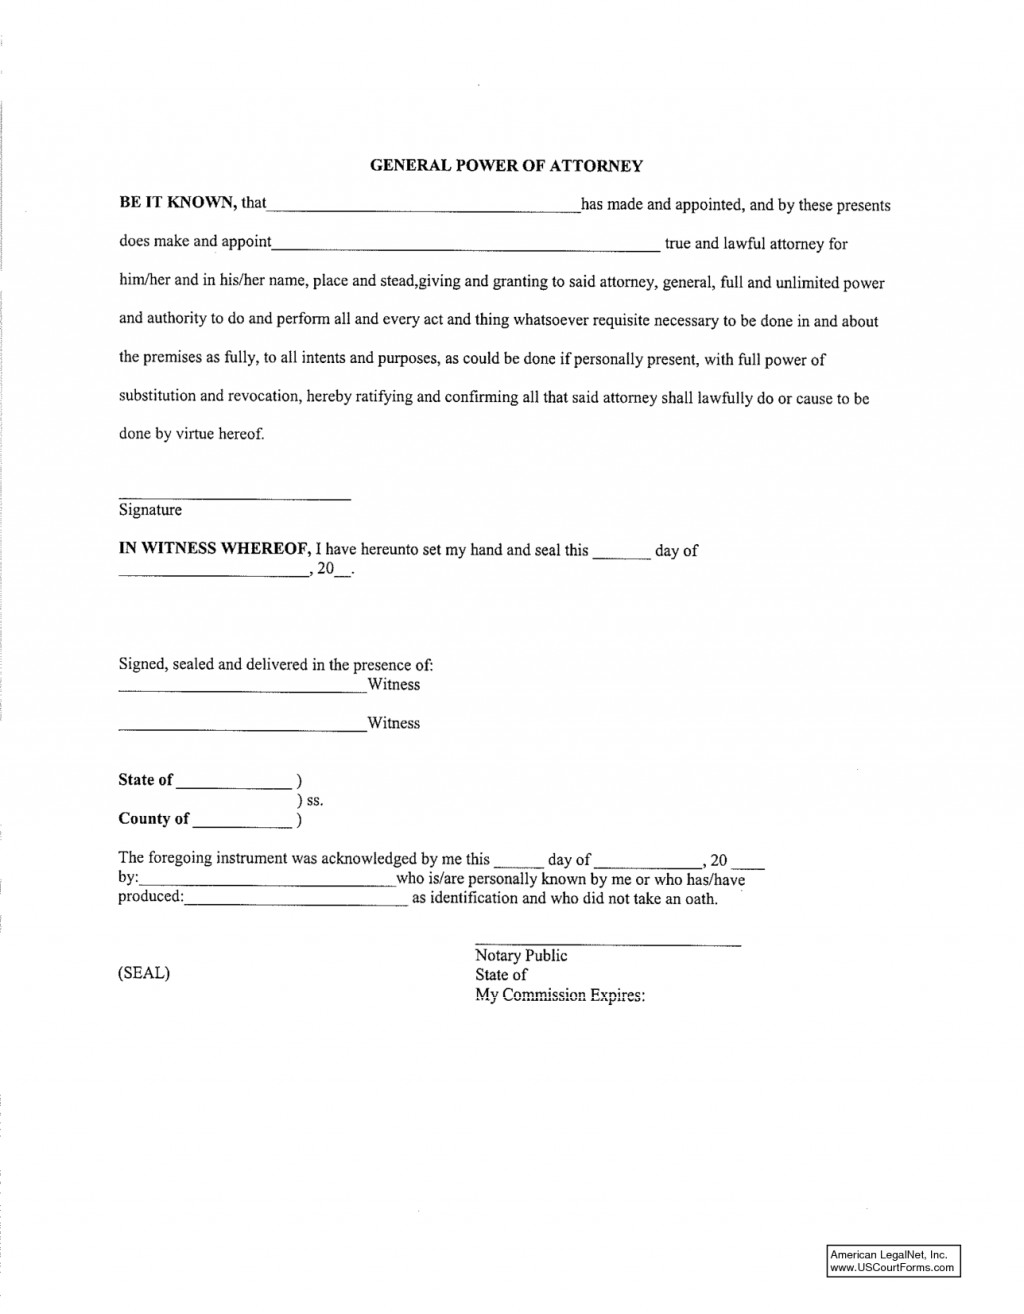 General Power Of Attorney Format In Word